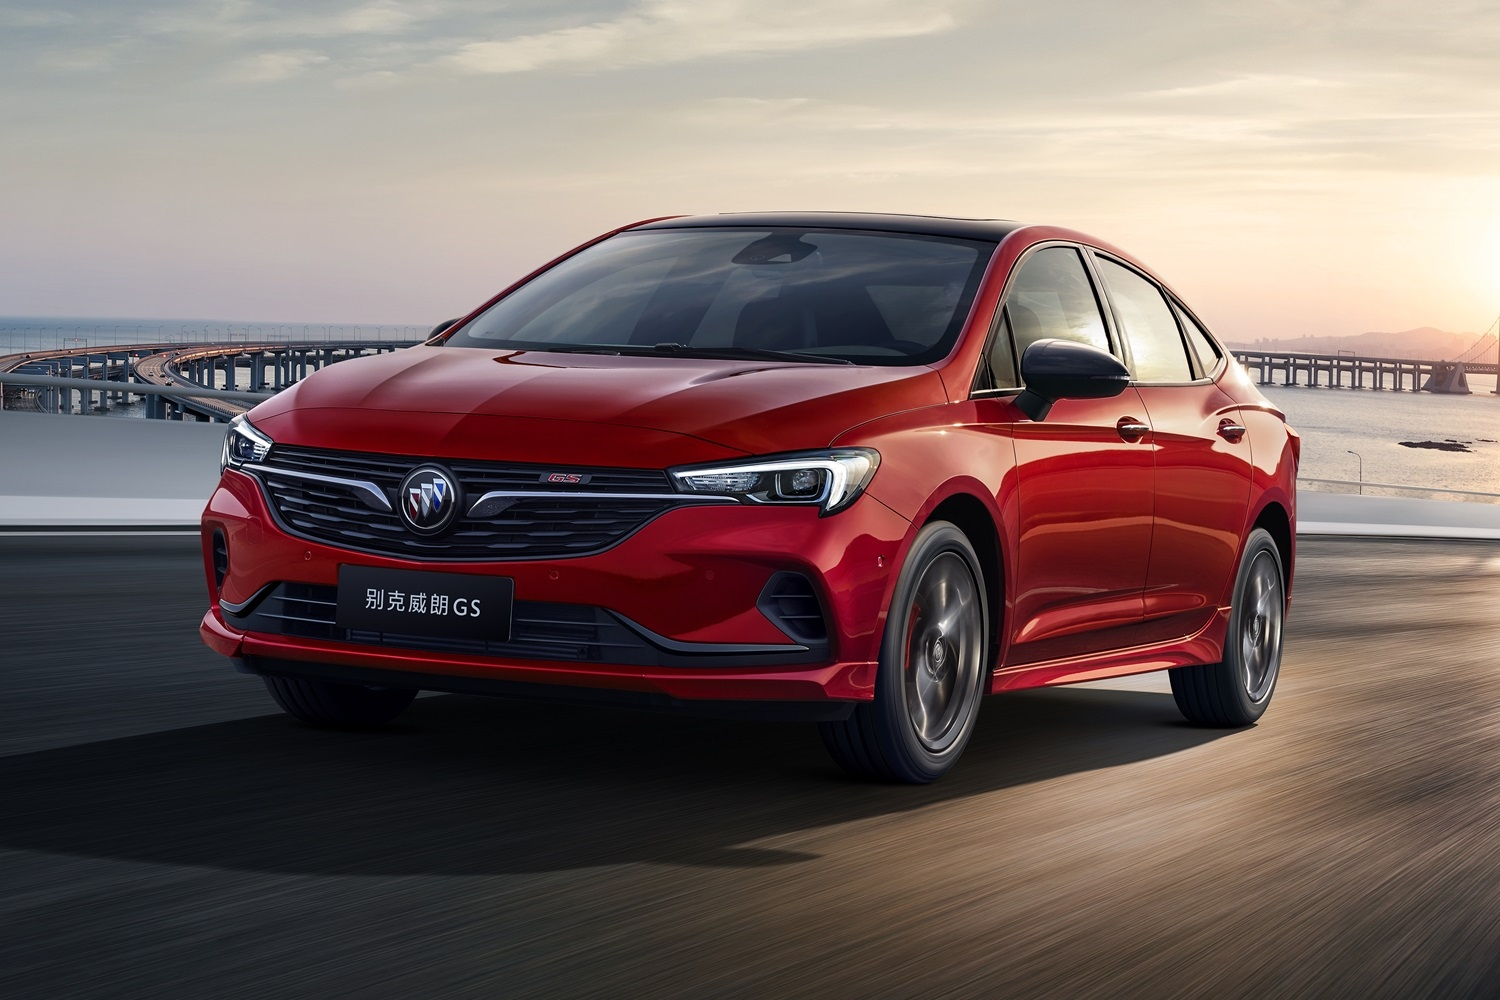 New 2021 Buick Verano Gs Launches In China | Gm Authority New 2021 Buick Verano Trim Levels, Performance Parts, Cost